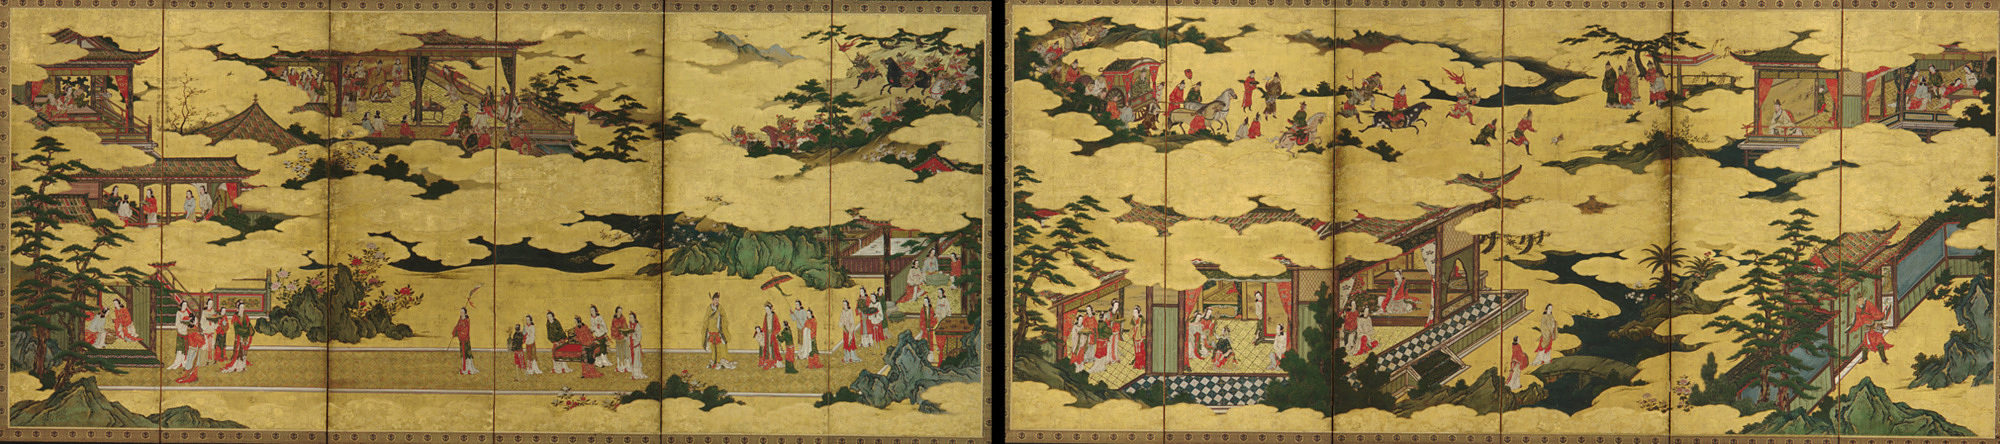 F1901.20-21: Scenes from the life of the Ming Huang Emperor and Yang Guifei (one of a pair with F1901.21)